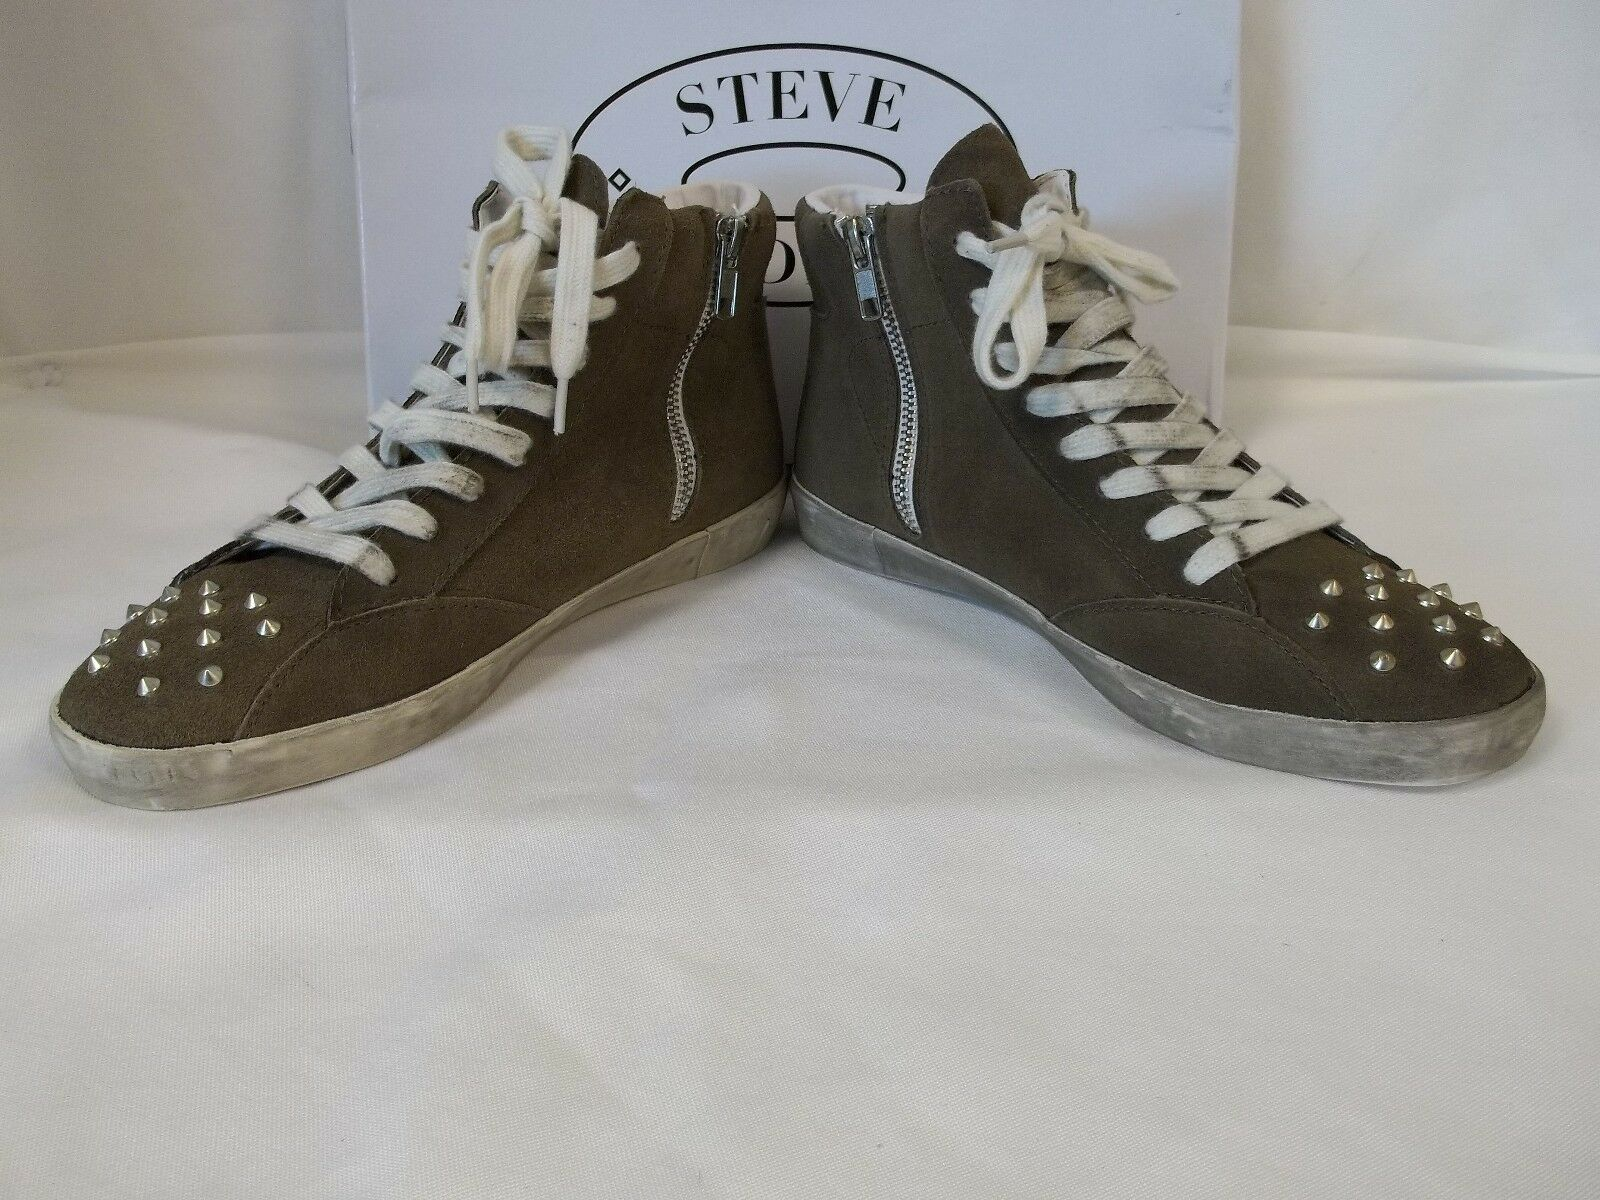 Steve Madden 11 M Twynkle Taupe Damenschuhe Suede Fashion Sneakers New Damenschuhe Taupe Schuhes 11628e